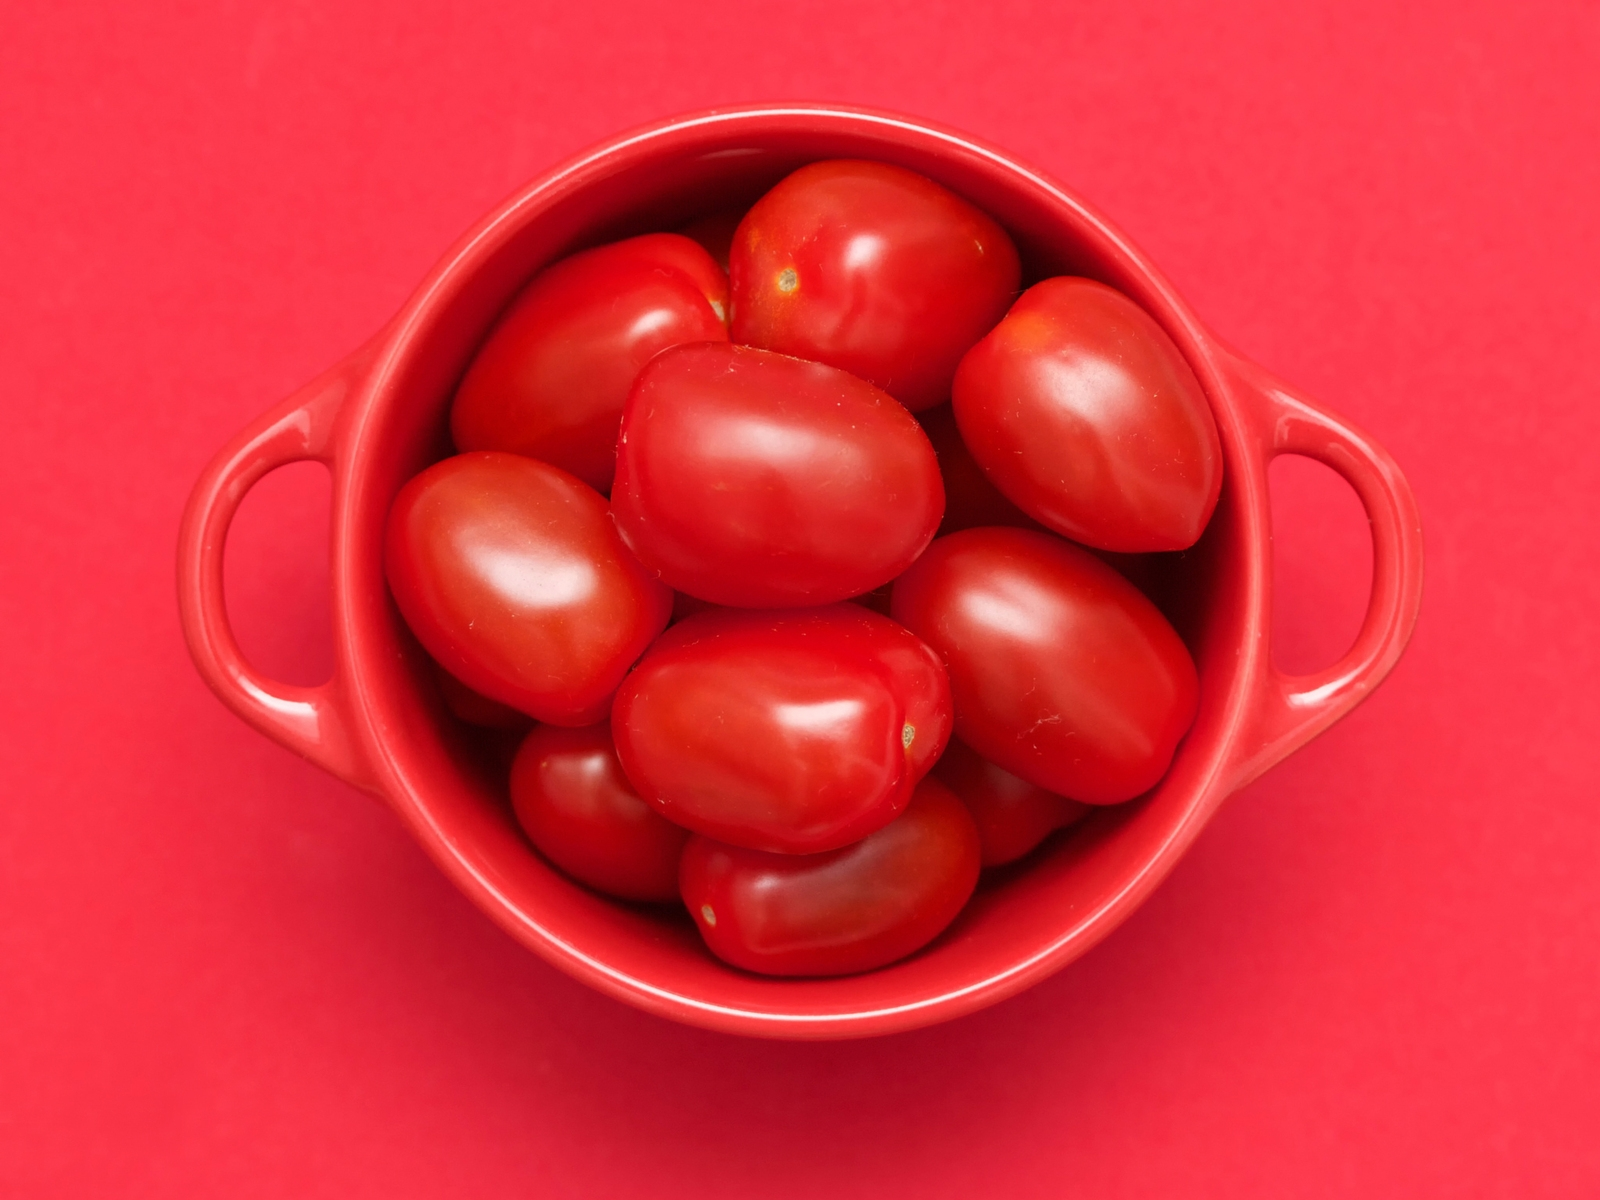 Red Tomatoes for 1600 x 1200 resolution